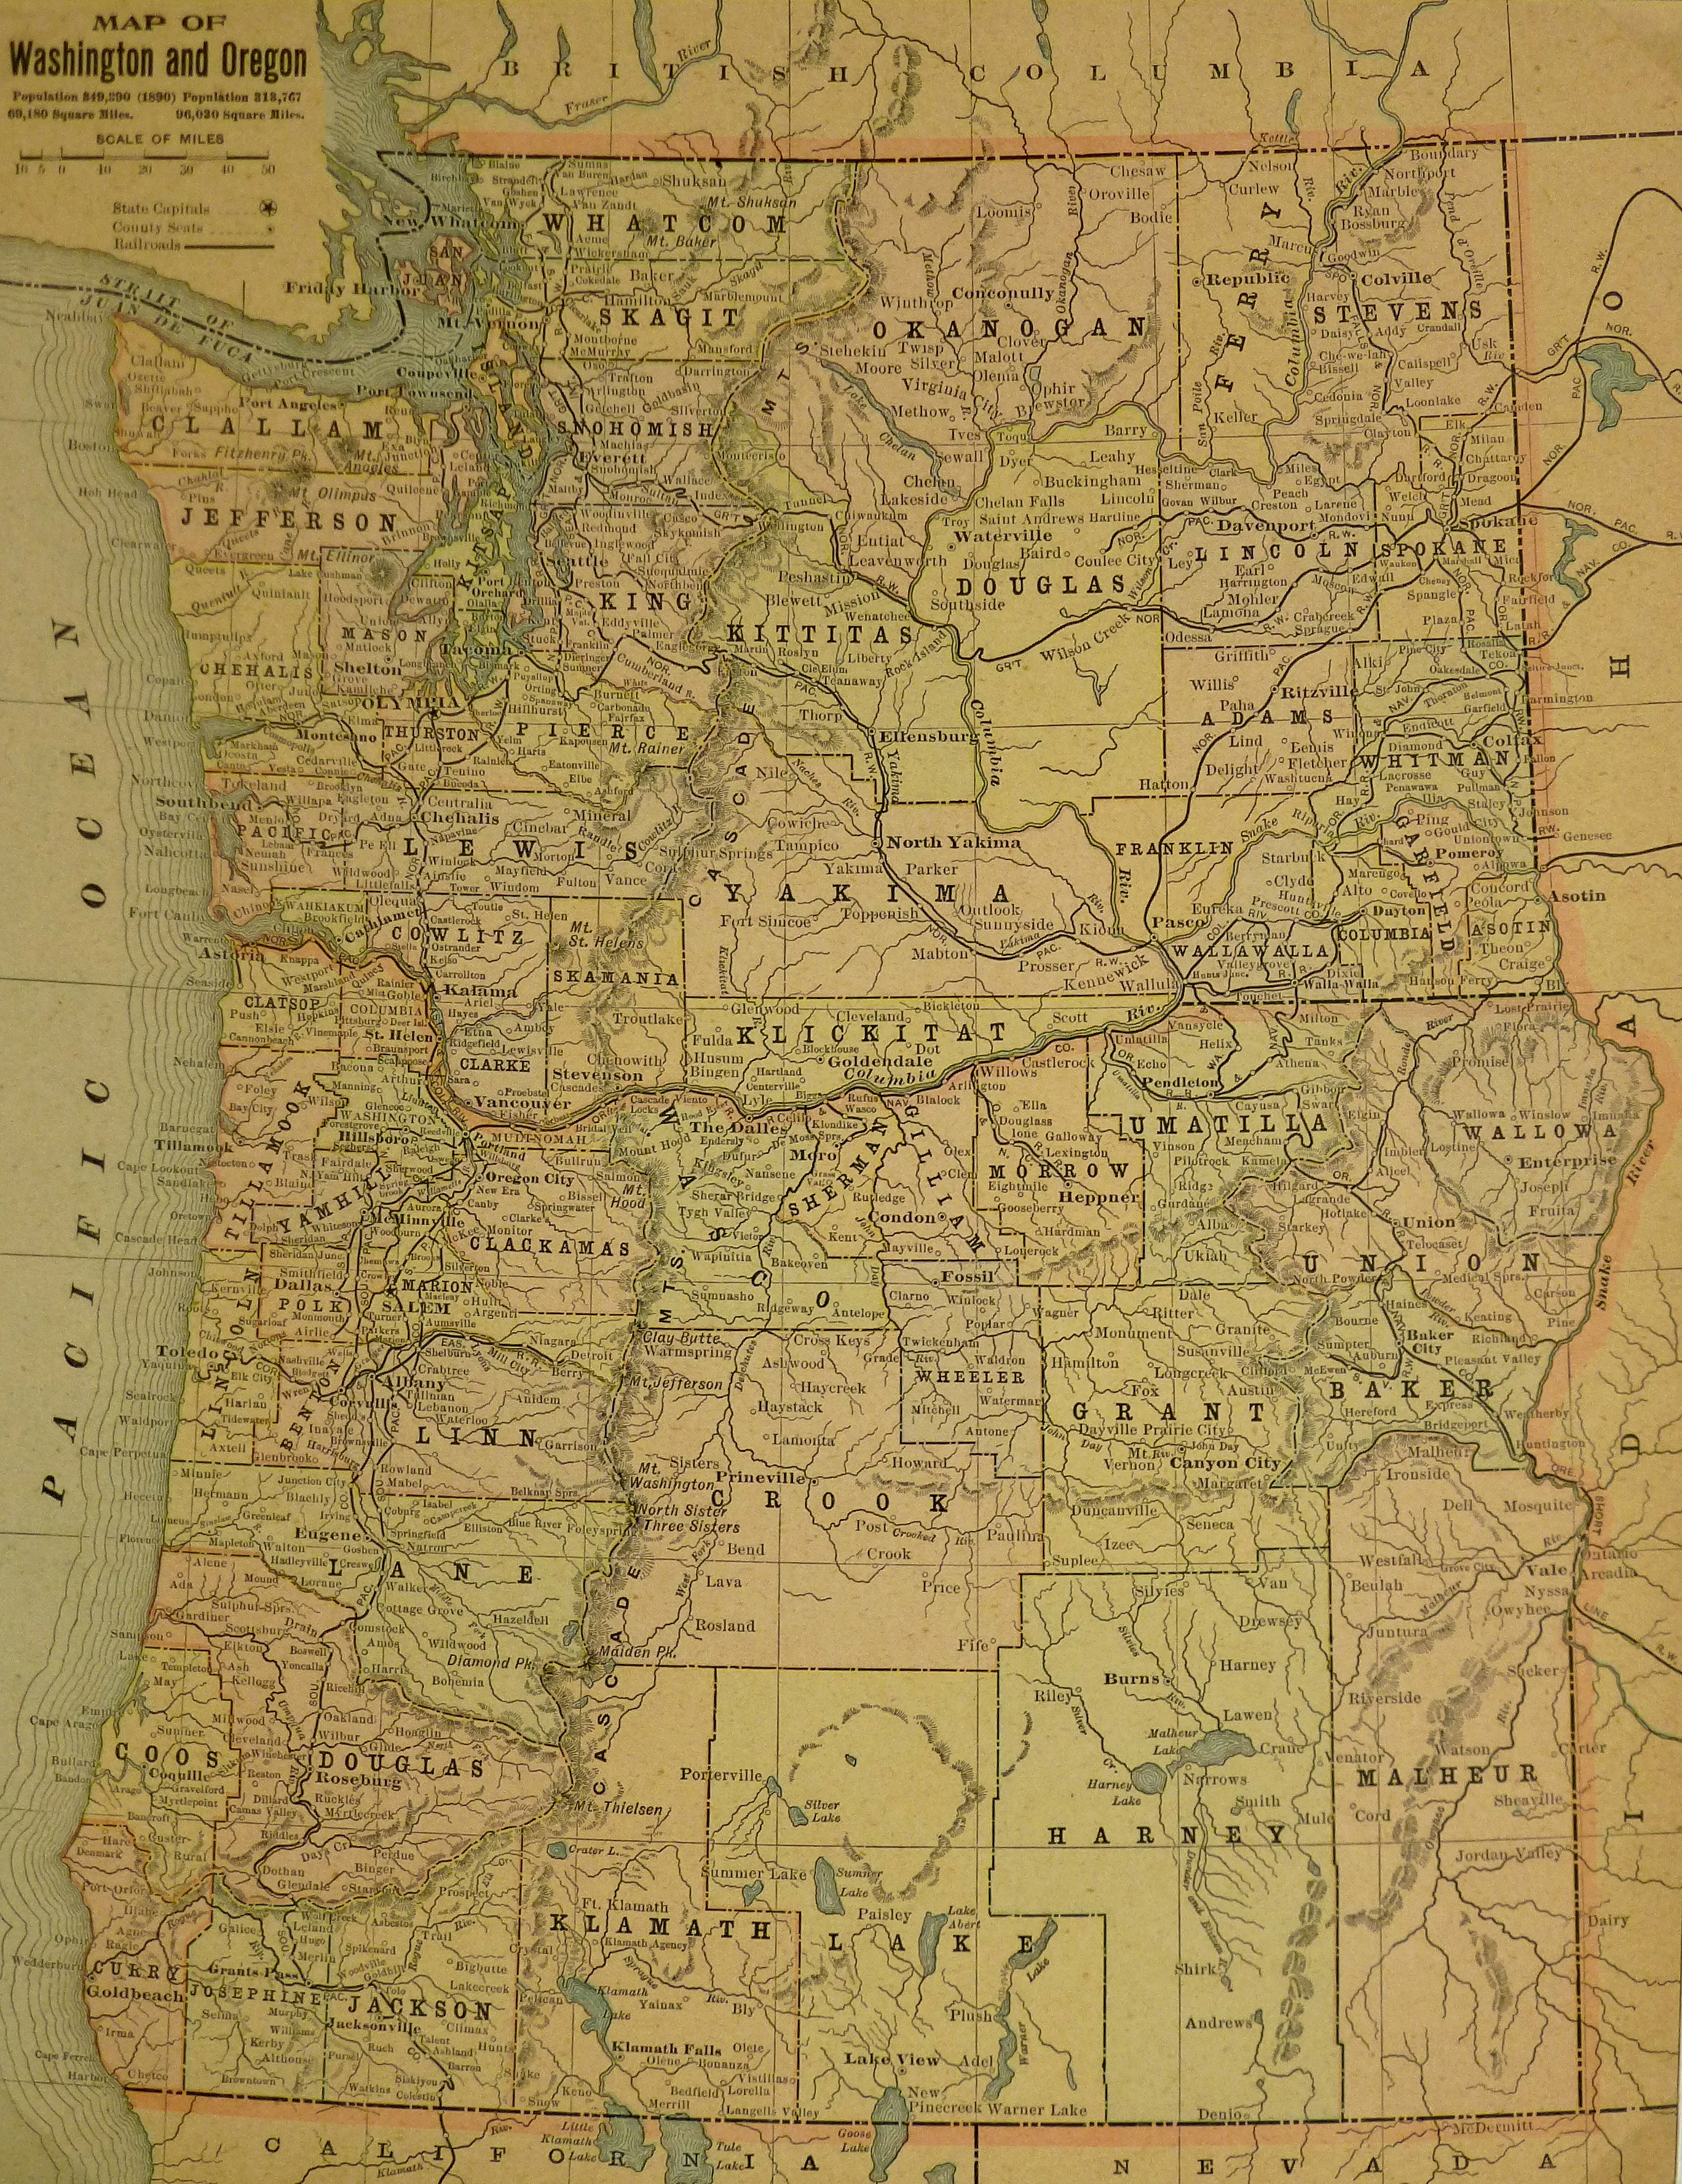 Map - Washington & Oregon, 1900-main-KB1693